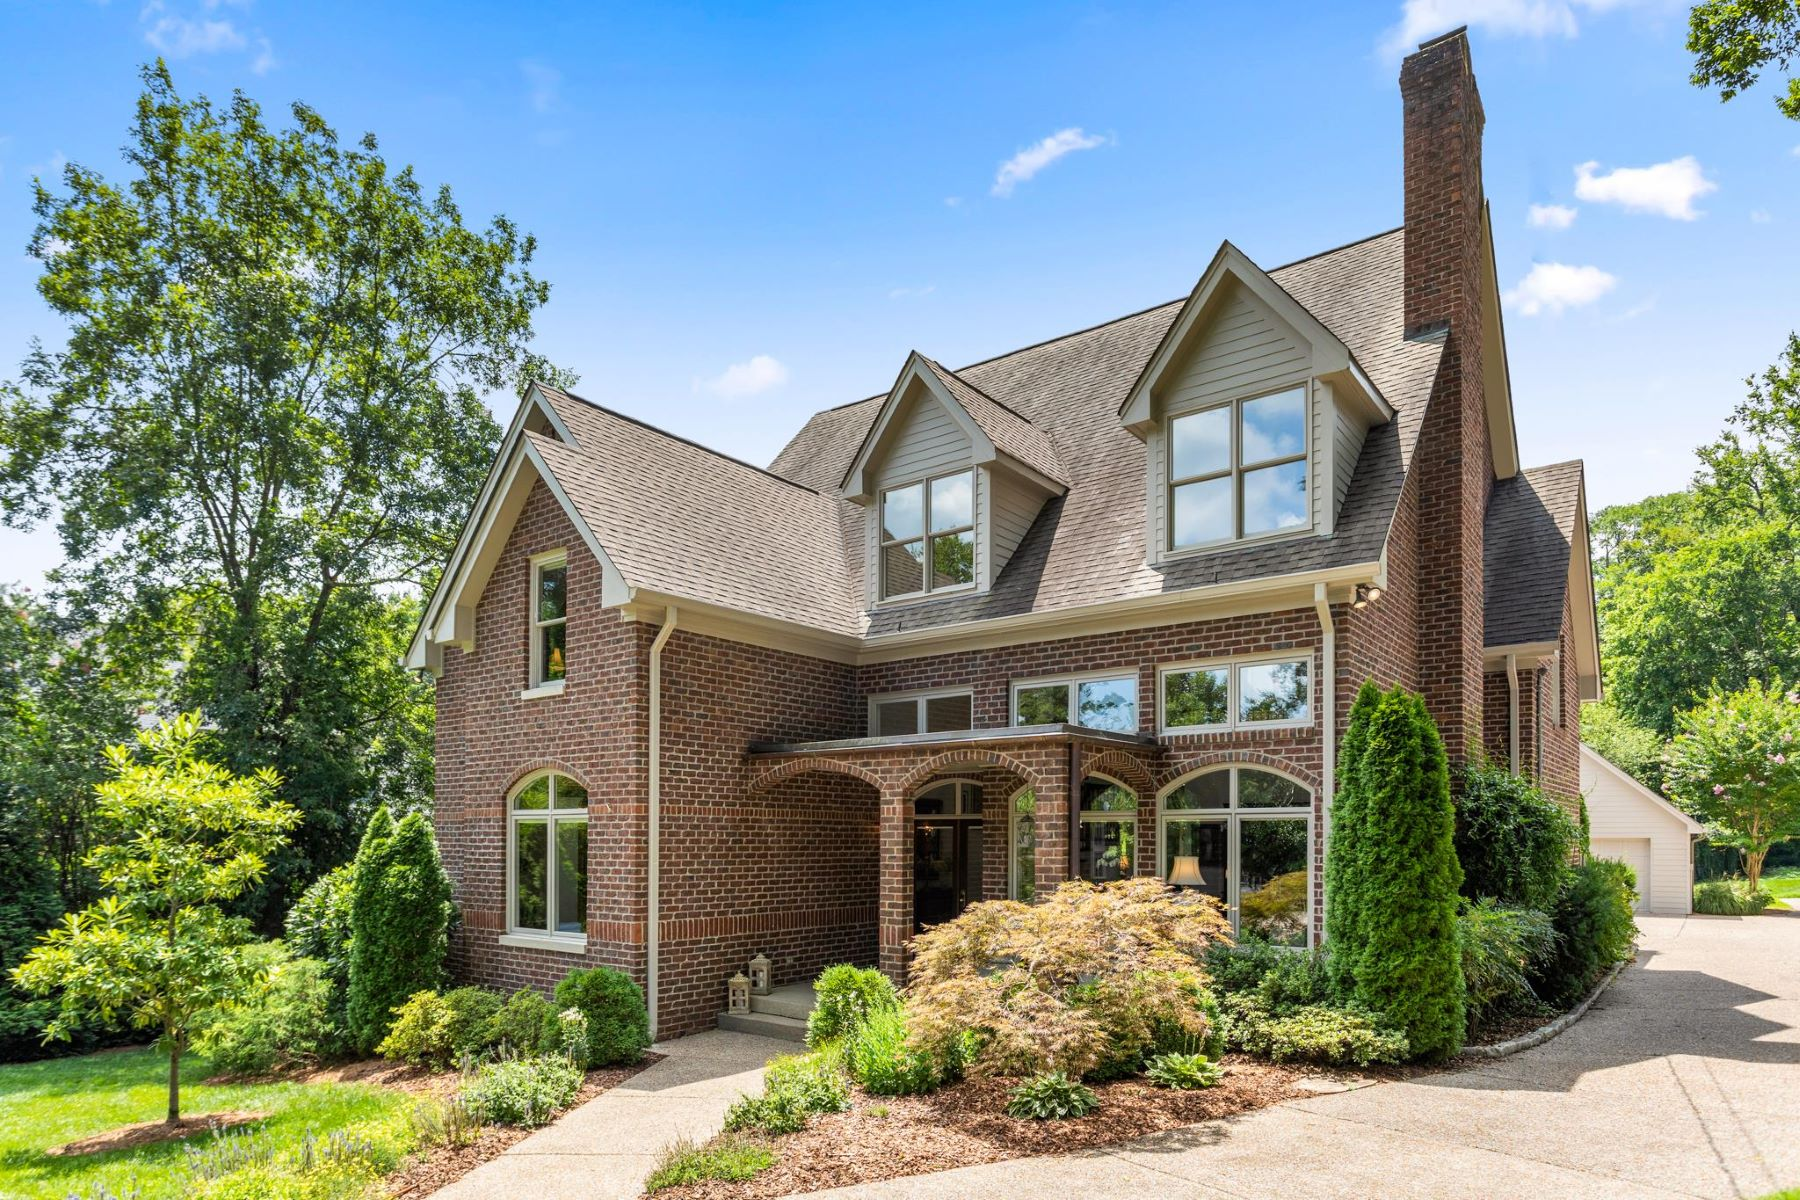 Single Family Homes for Active at Nashville Home in Historic Whitland 3629 Brighton Road Nashville, Tennessee 37205 United States